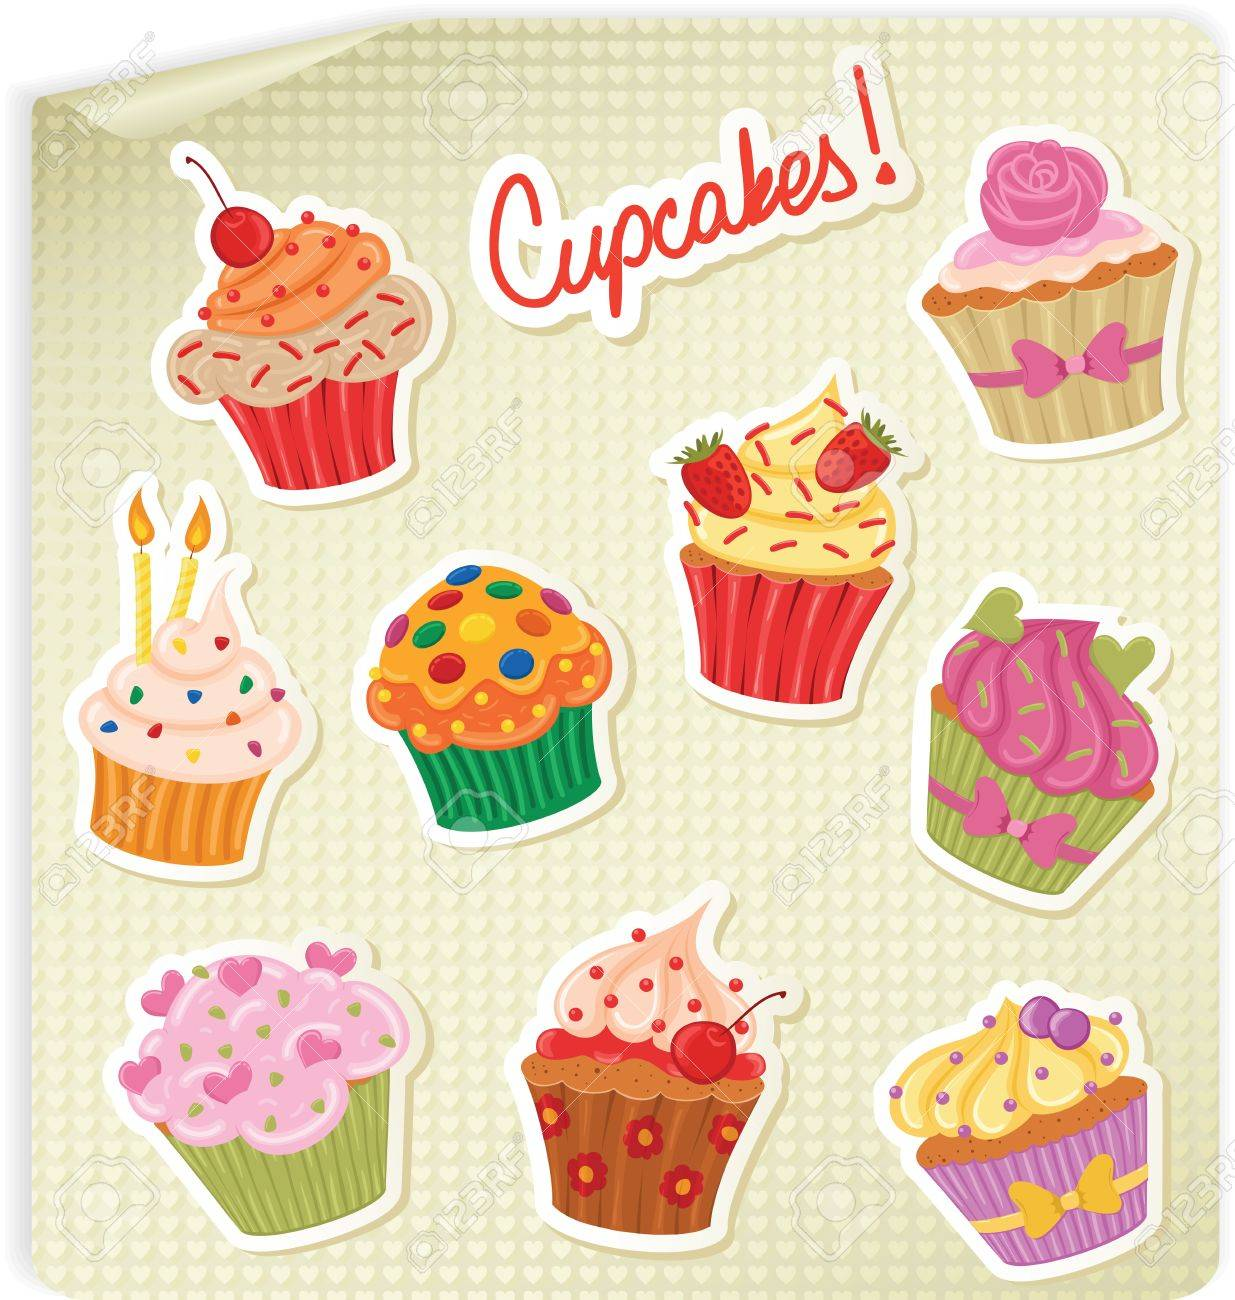 Cupcake Stickers On A Hearts Sheet Of Paper Royalty Free Cliparts